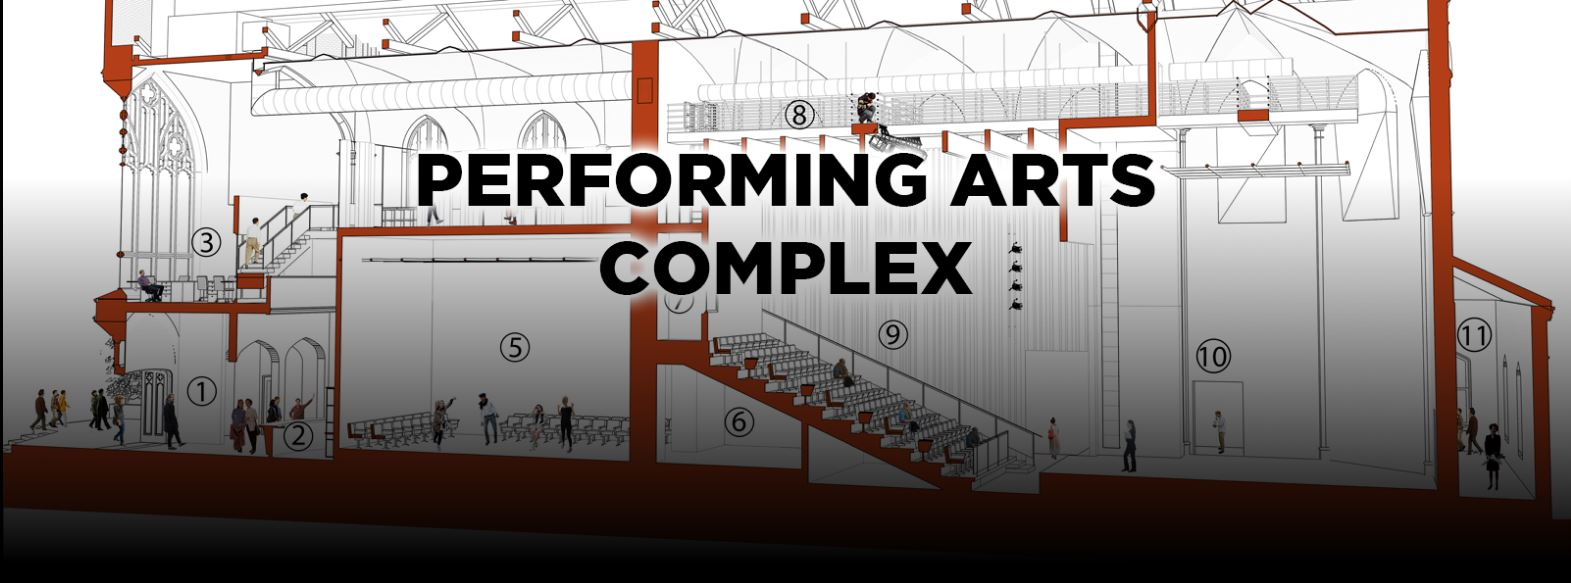 performingartscomplex